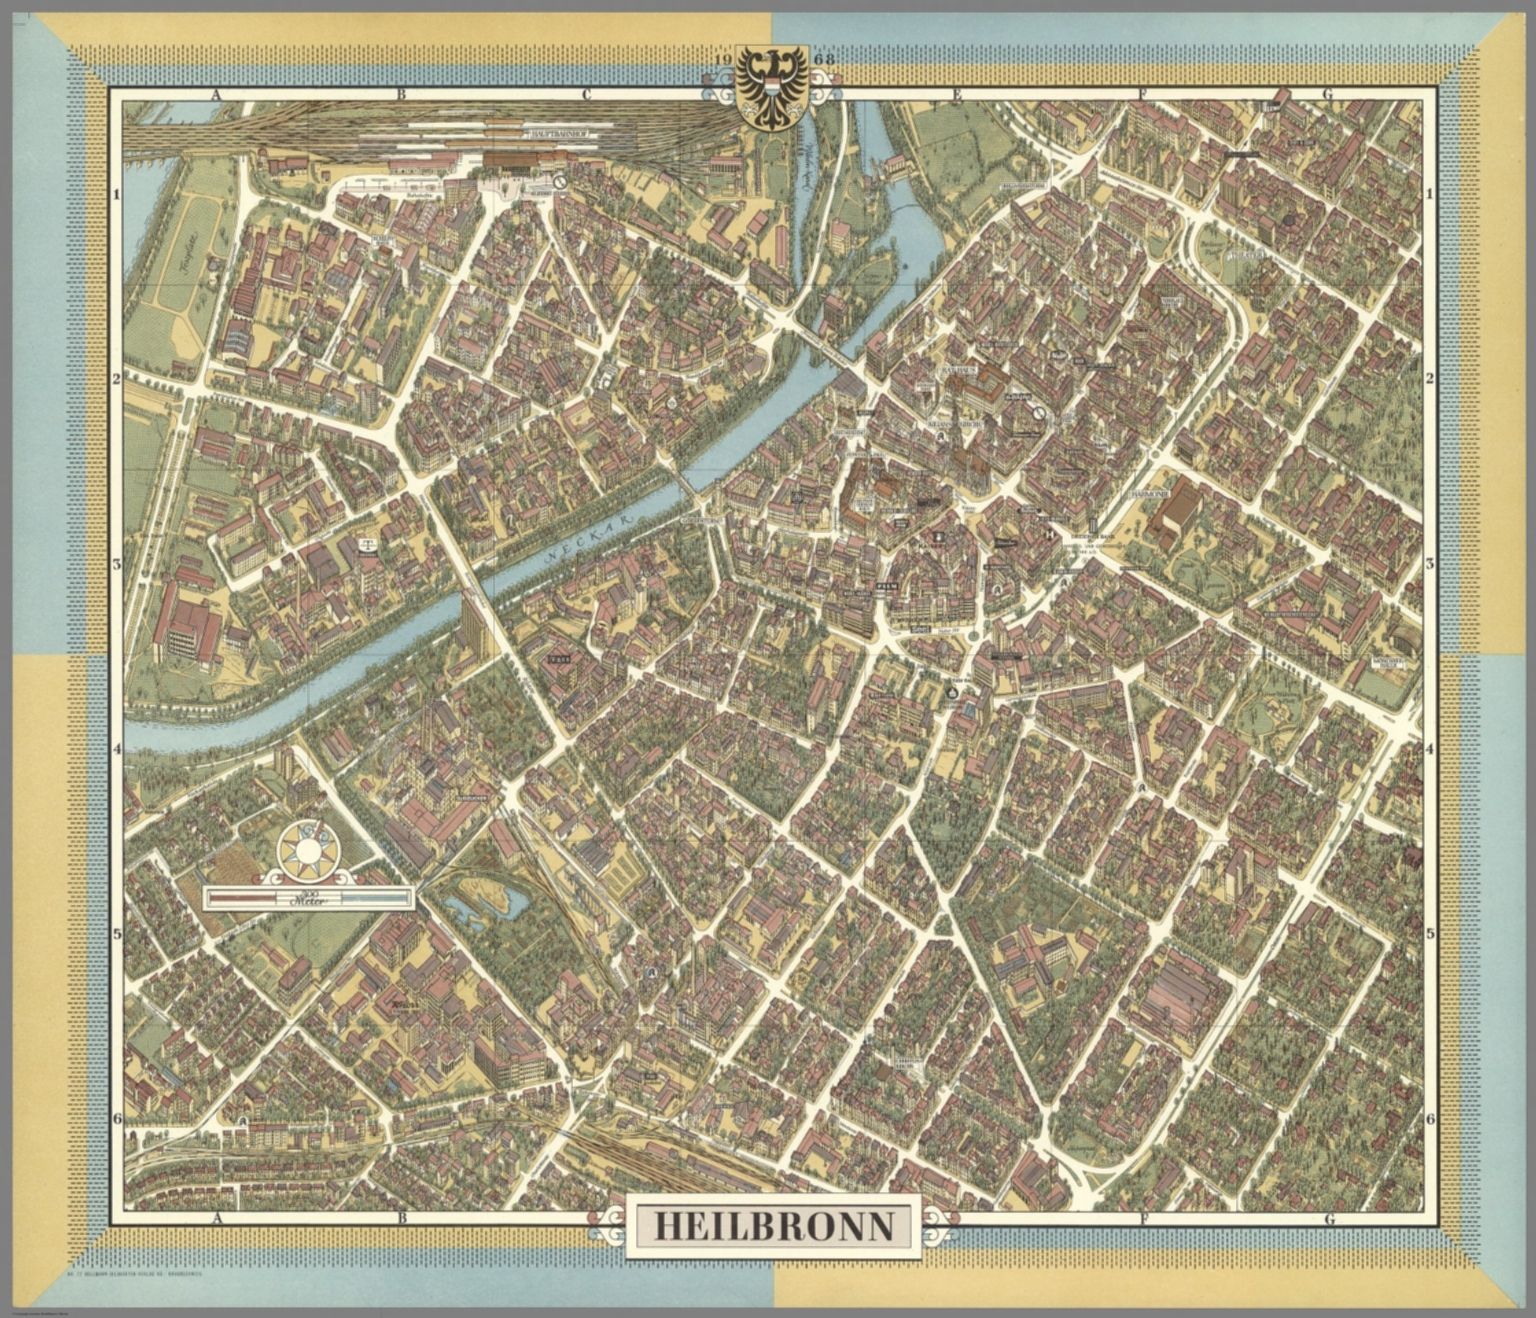 Heilbronn Germany David Rumsey Historical Map Collection